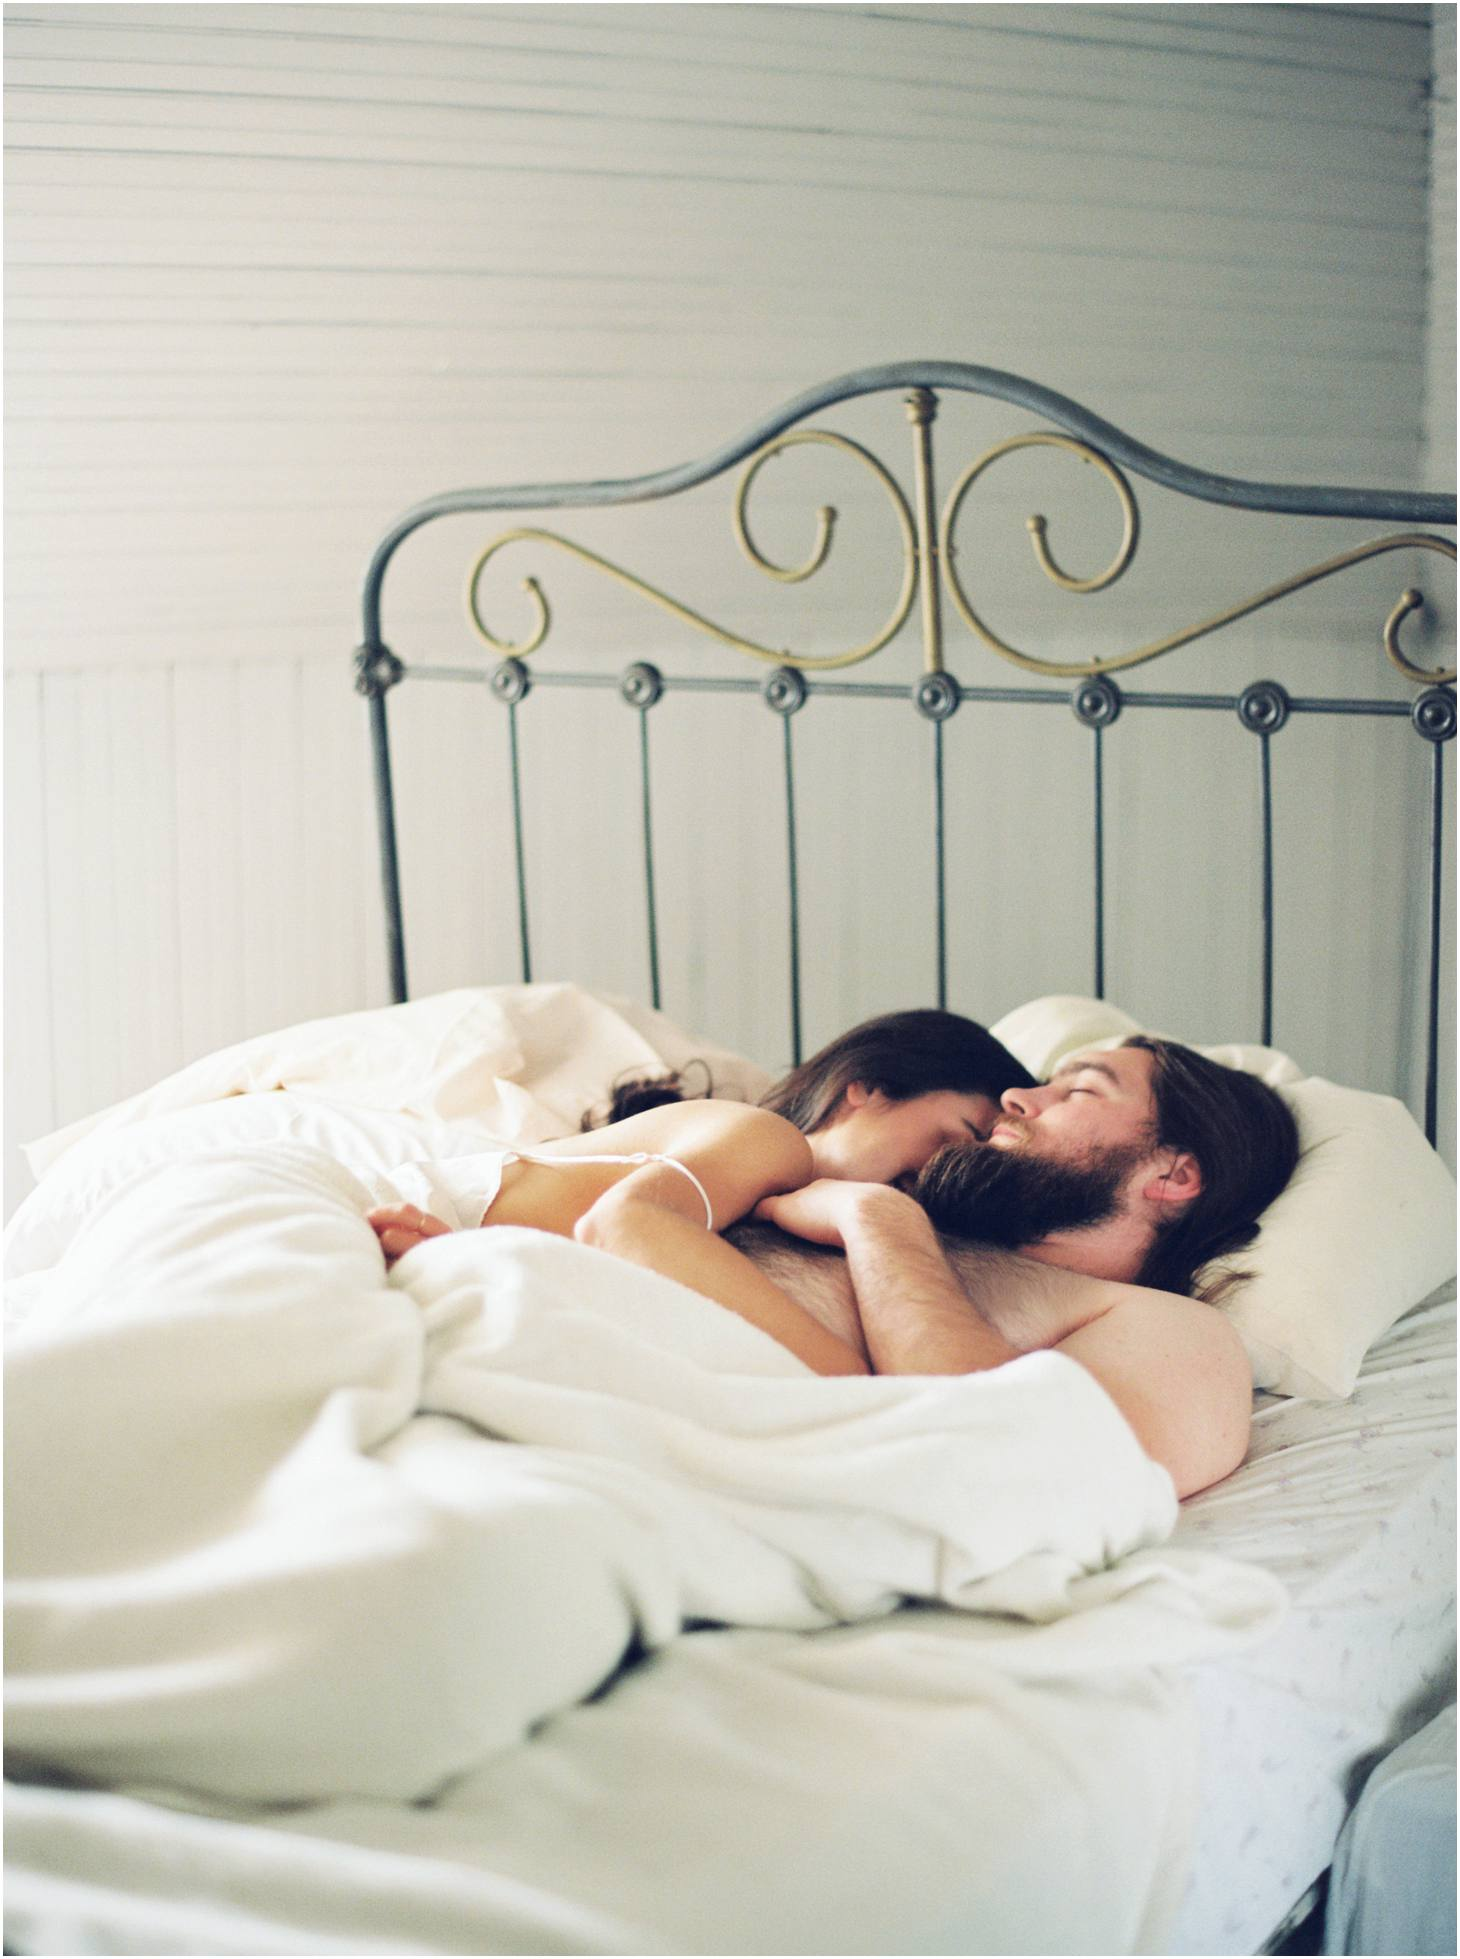 Kim Stockwell Photography Intimate Mornings Embrace Magazine_0005